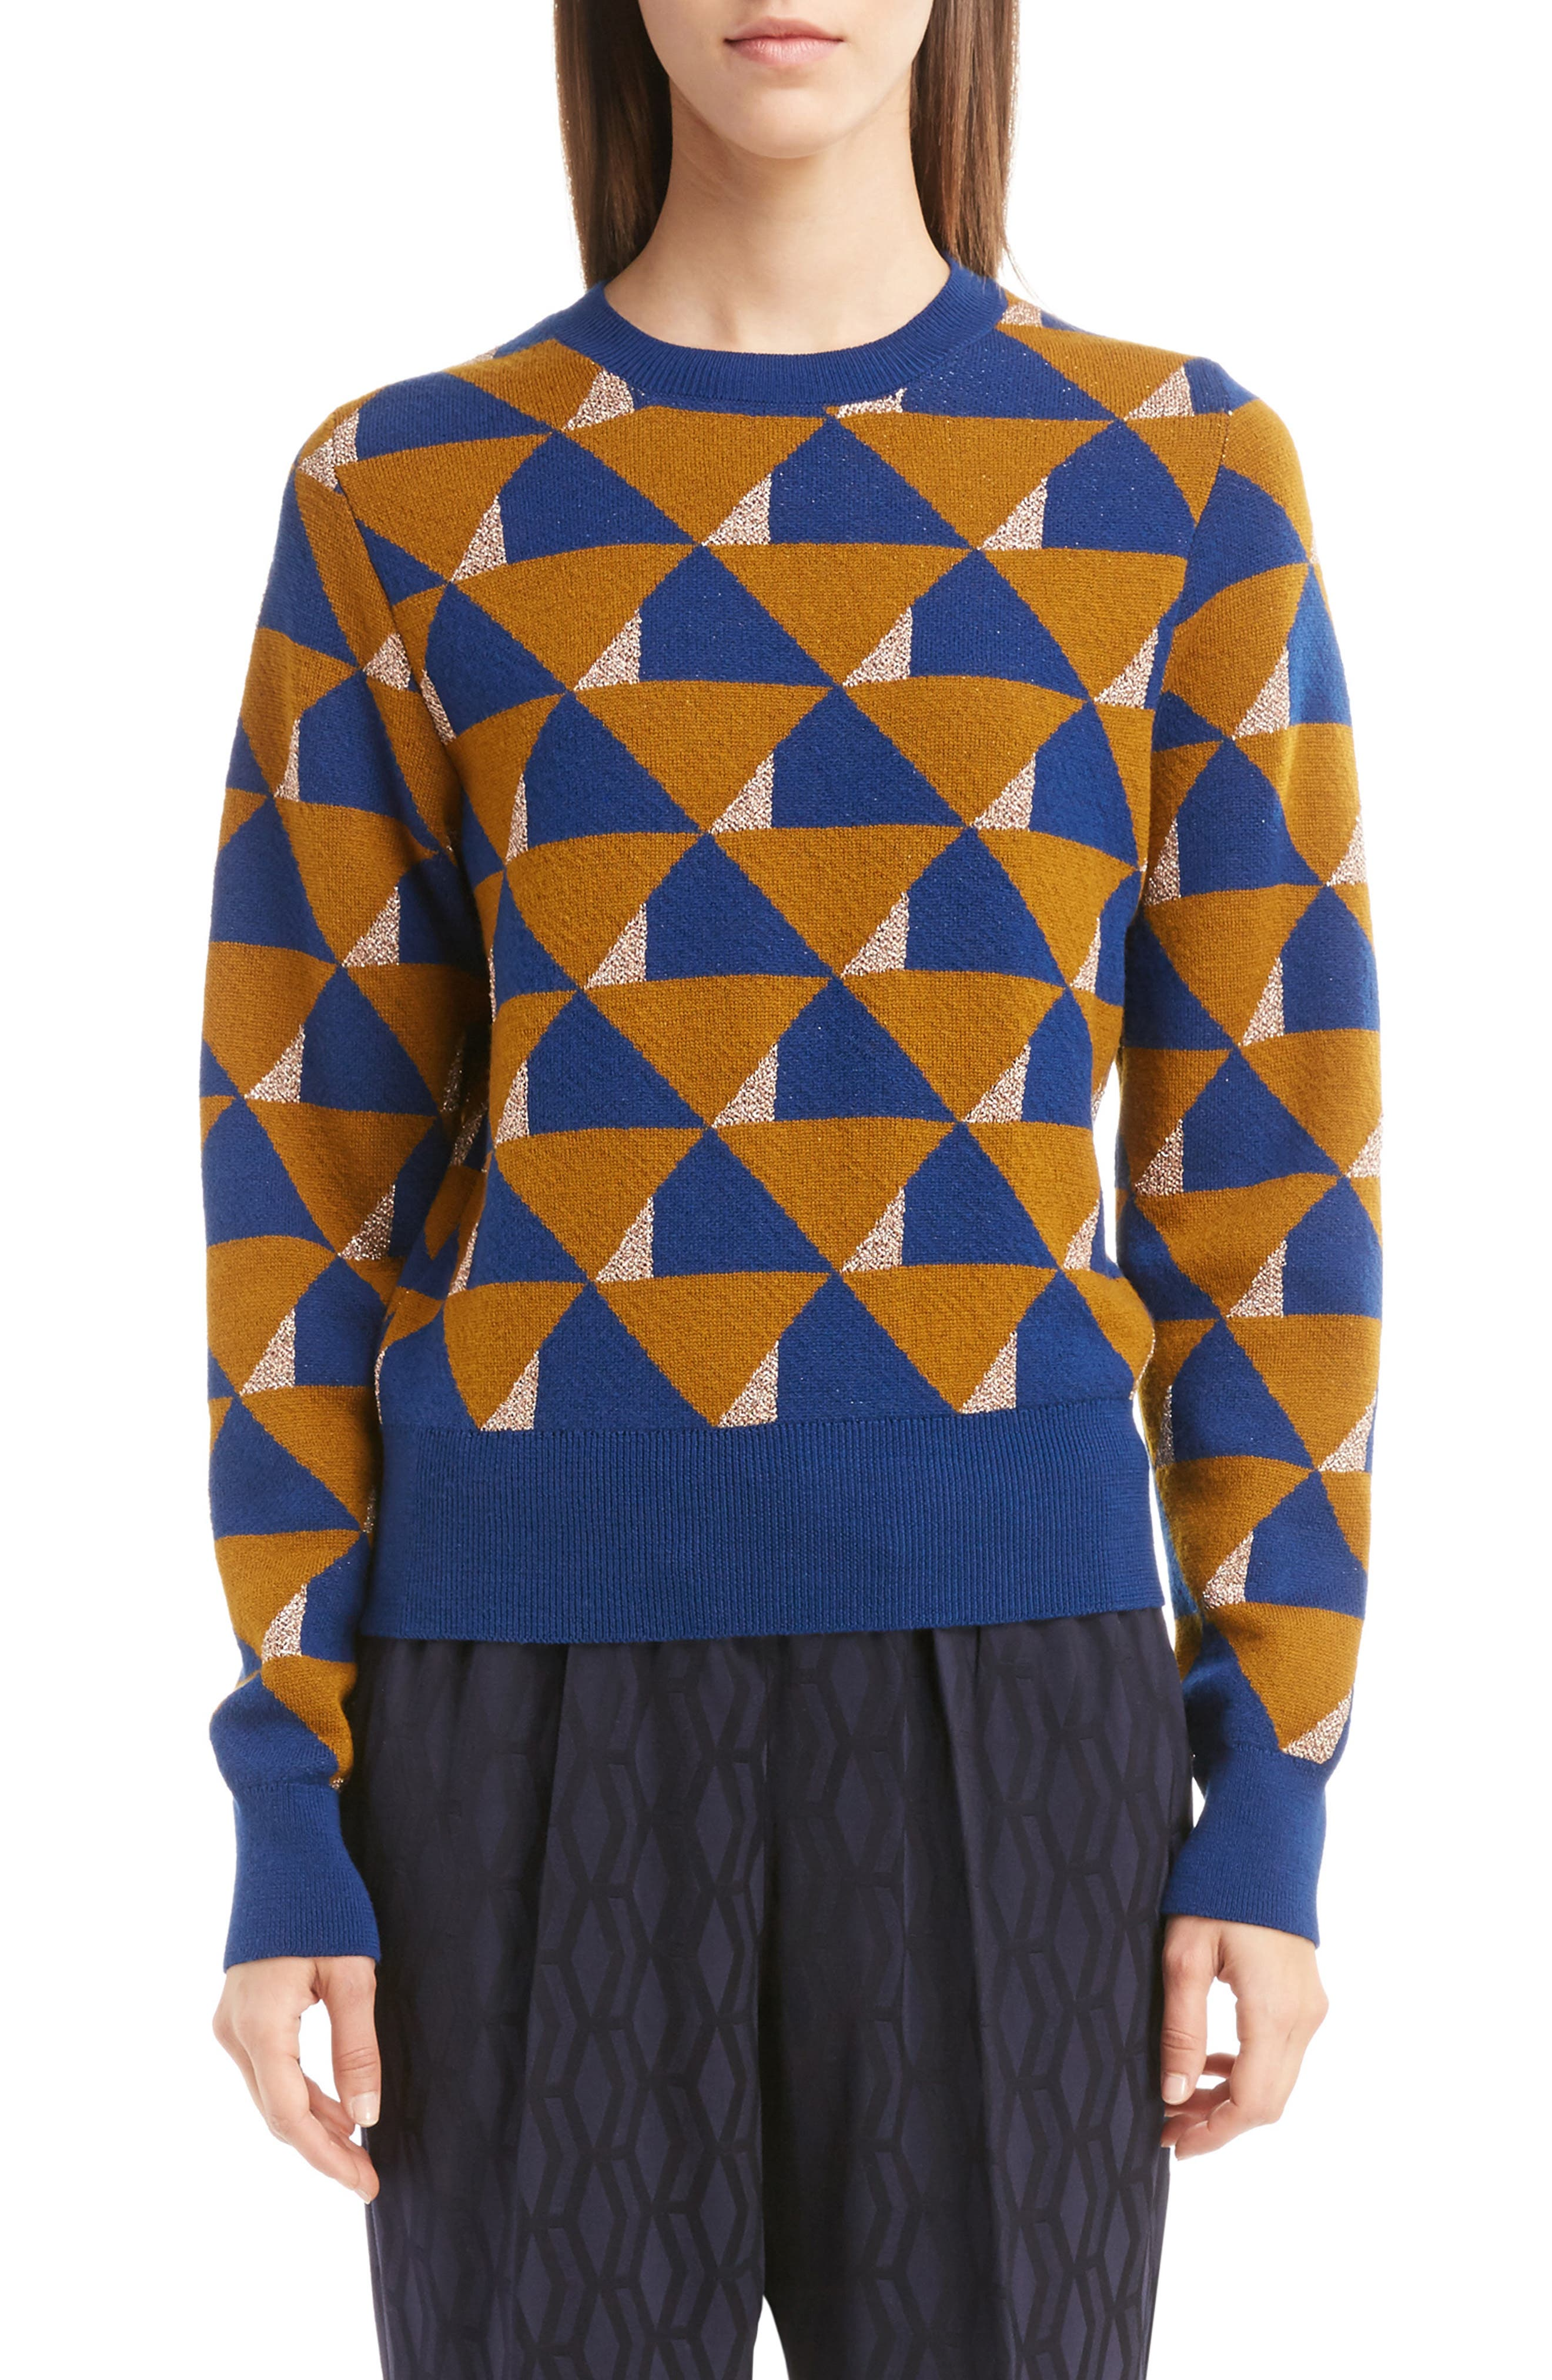 Graphic Knit Merino Wool Sweater,                             Main thumbnail 1, color,                             Ocra